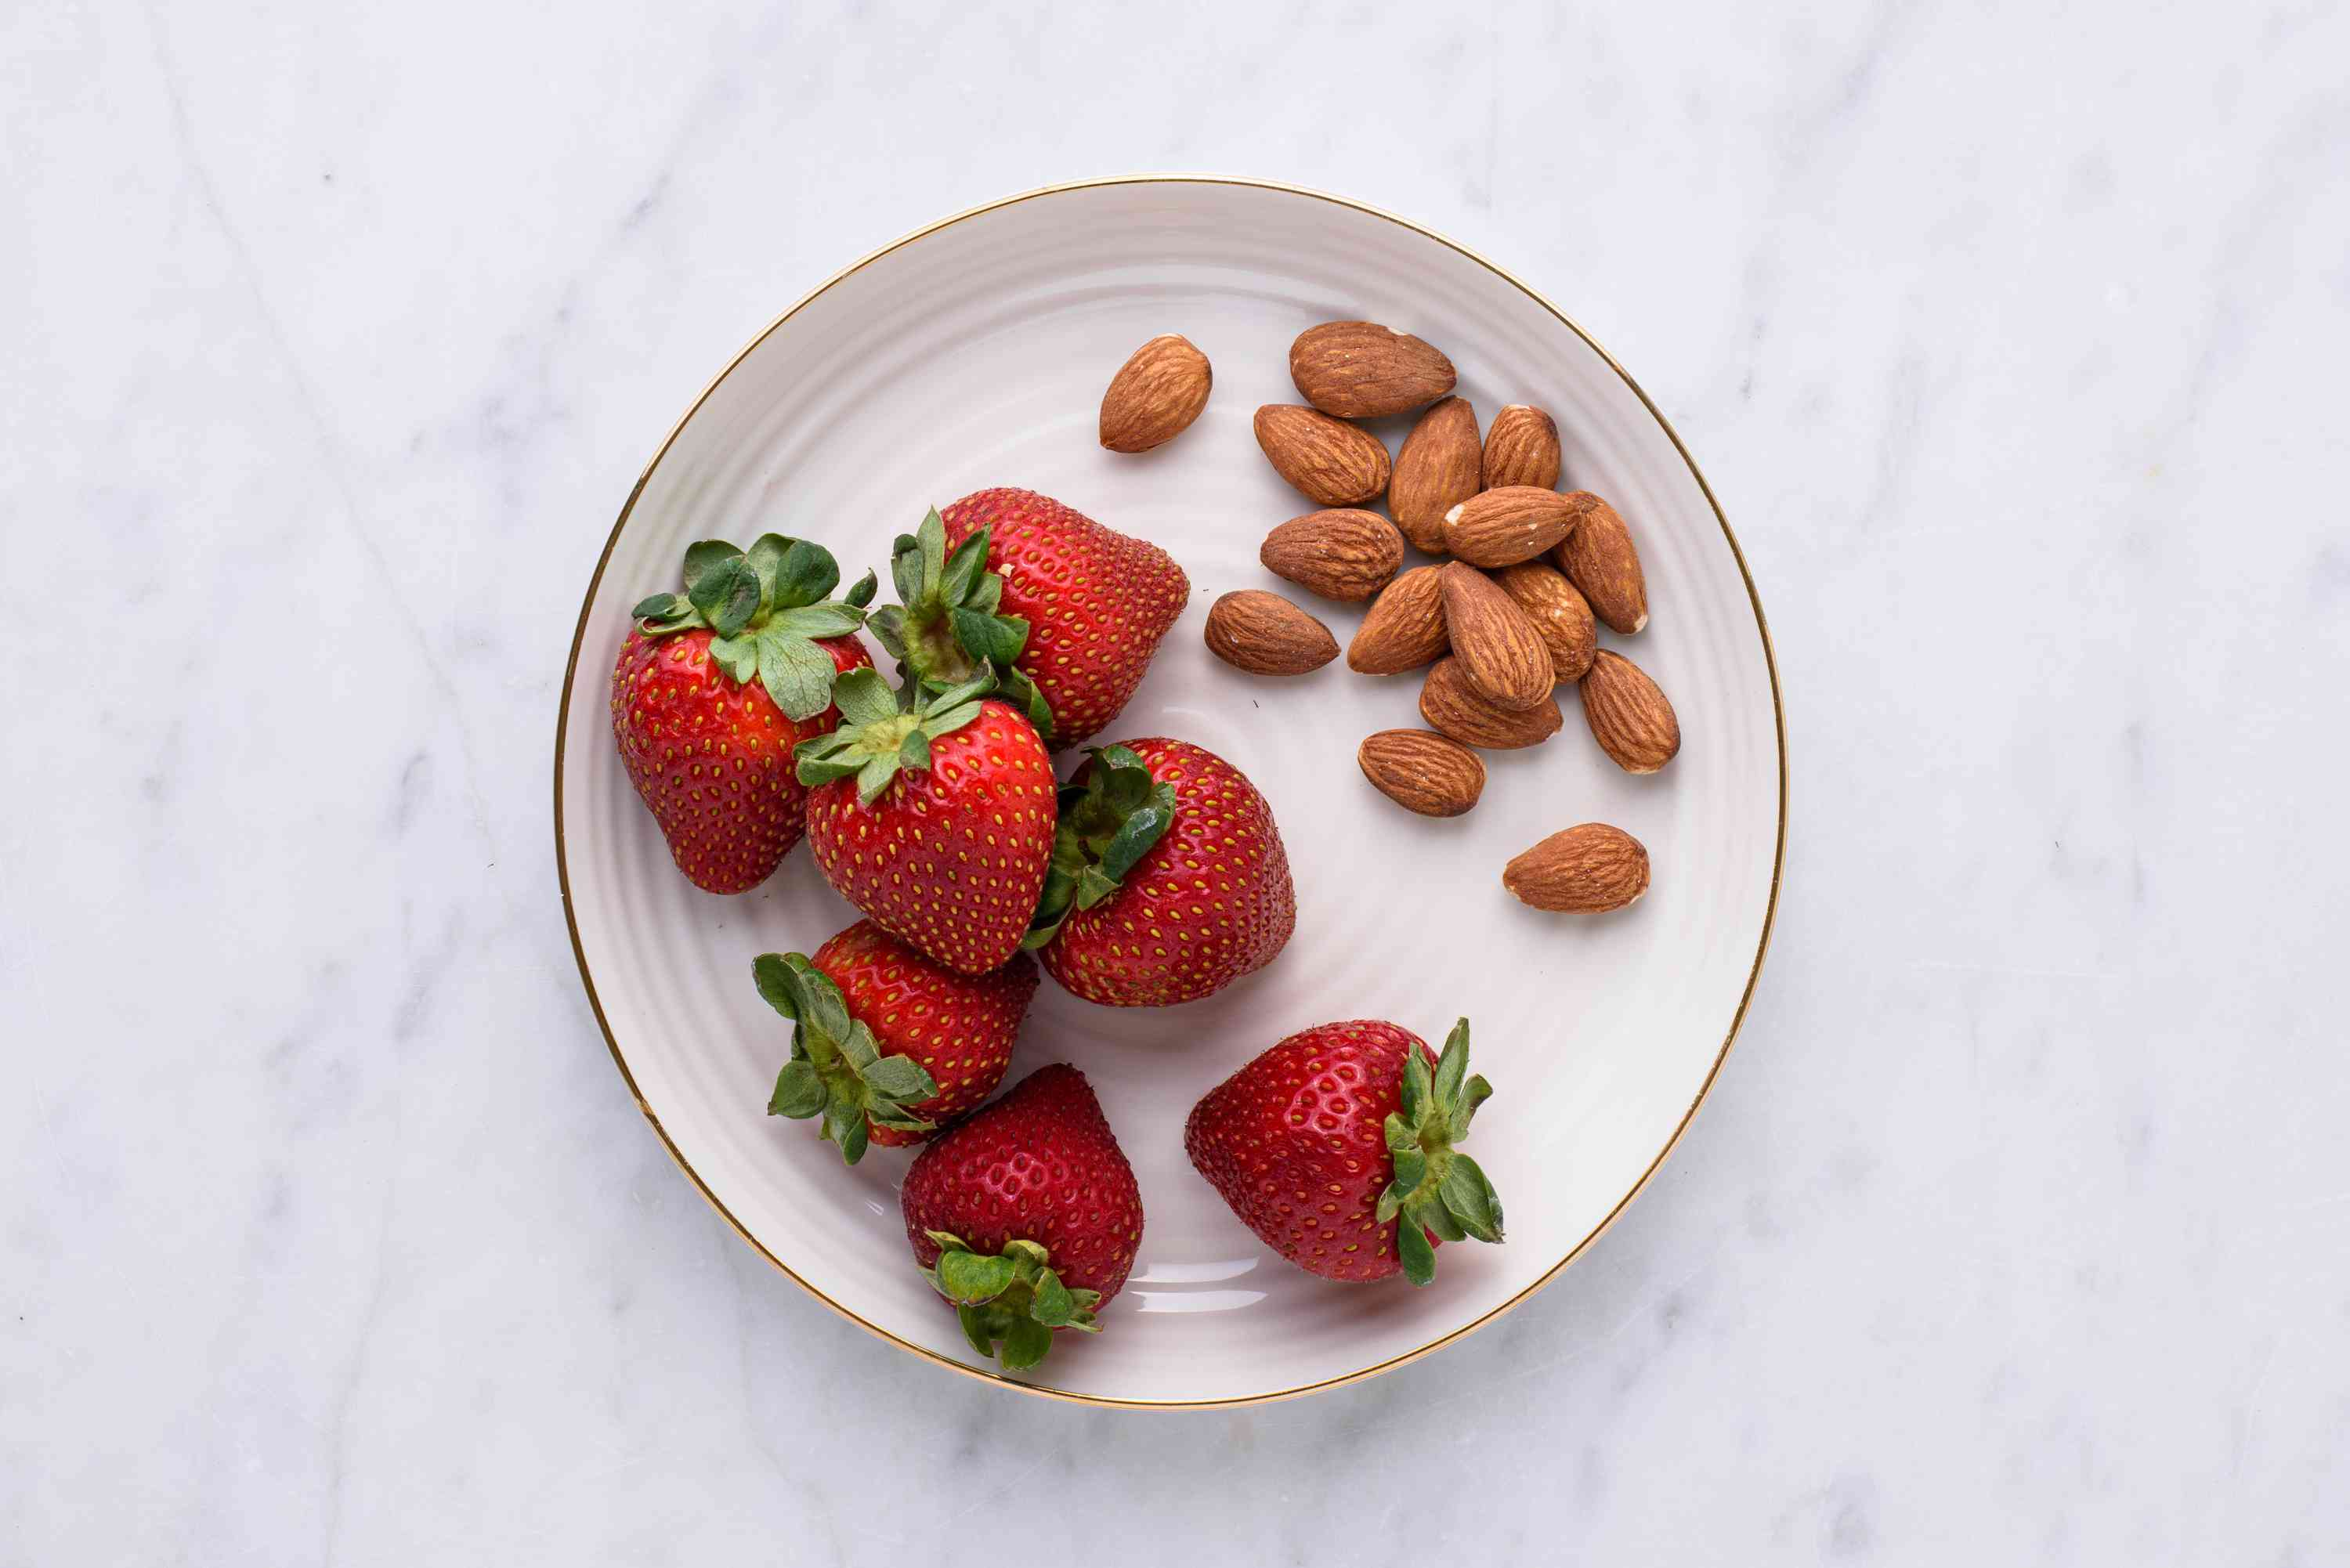 fresh strawberries and almonds on a plate